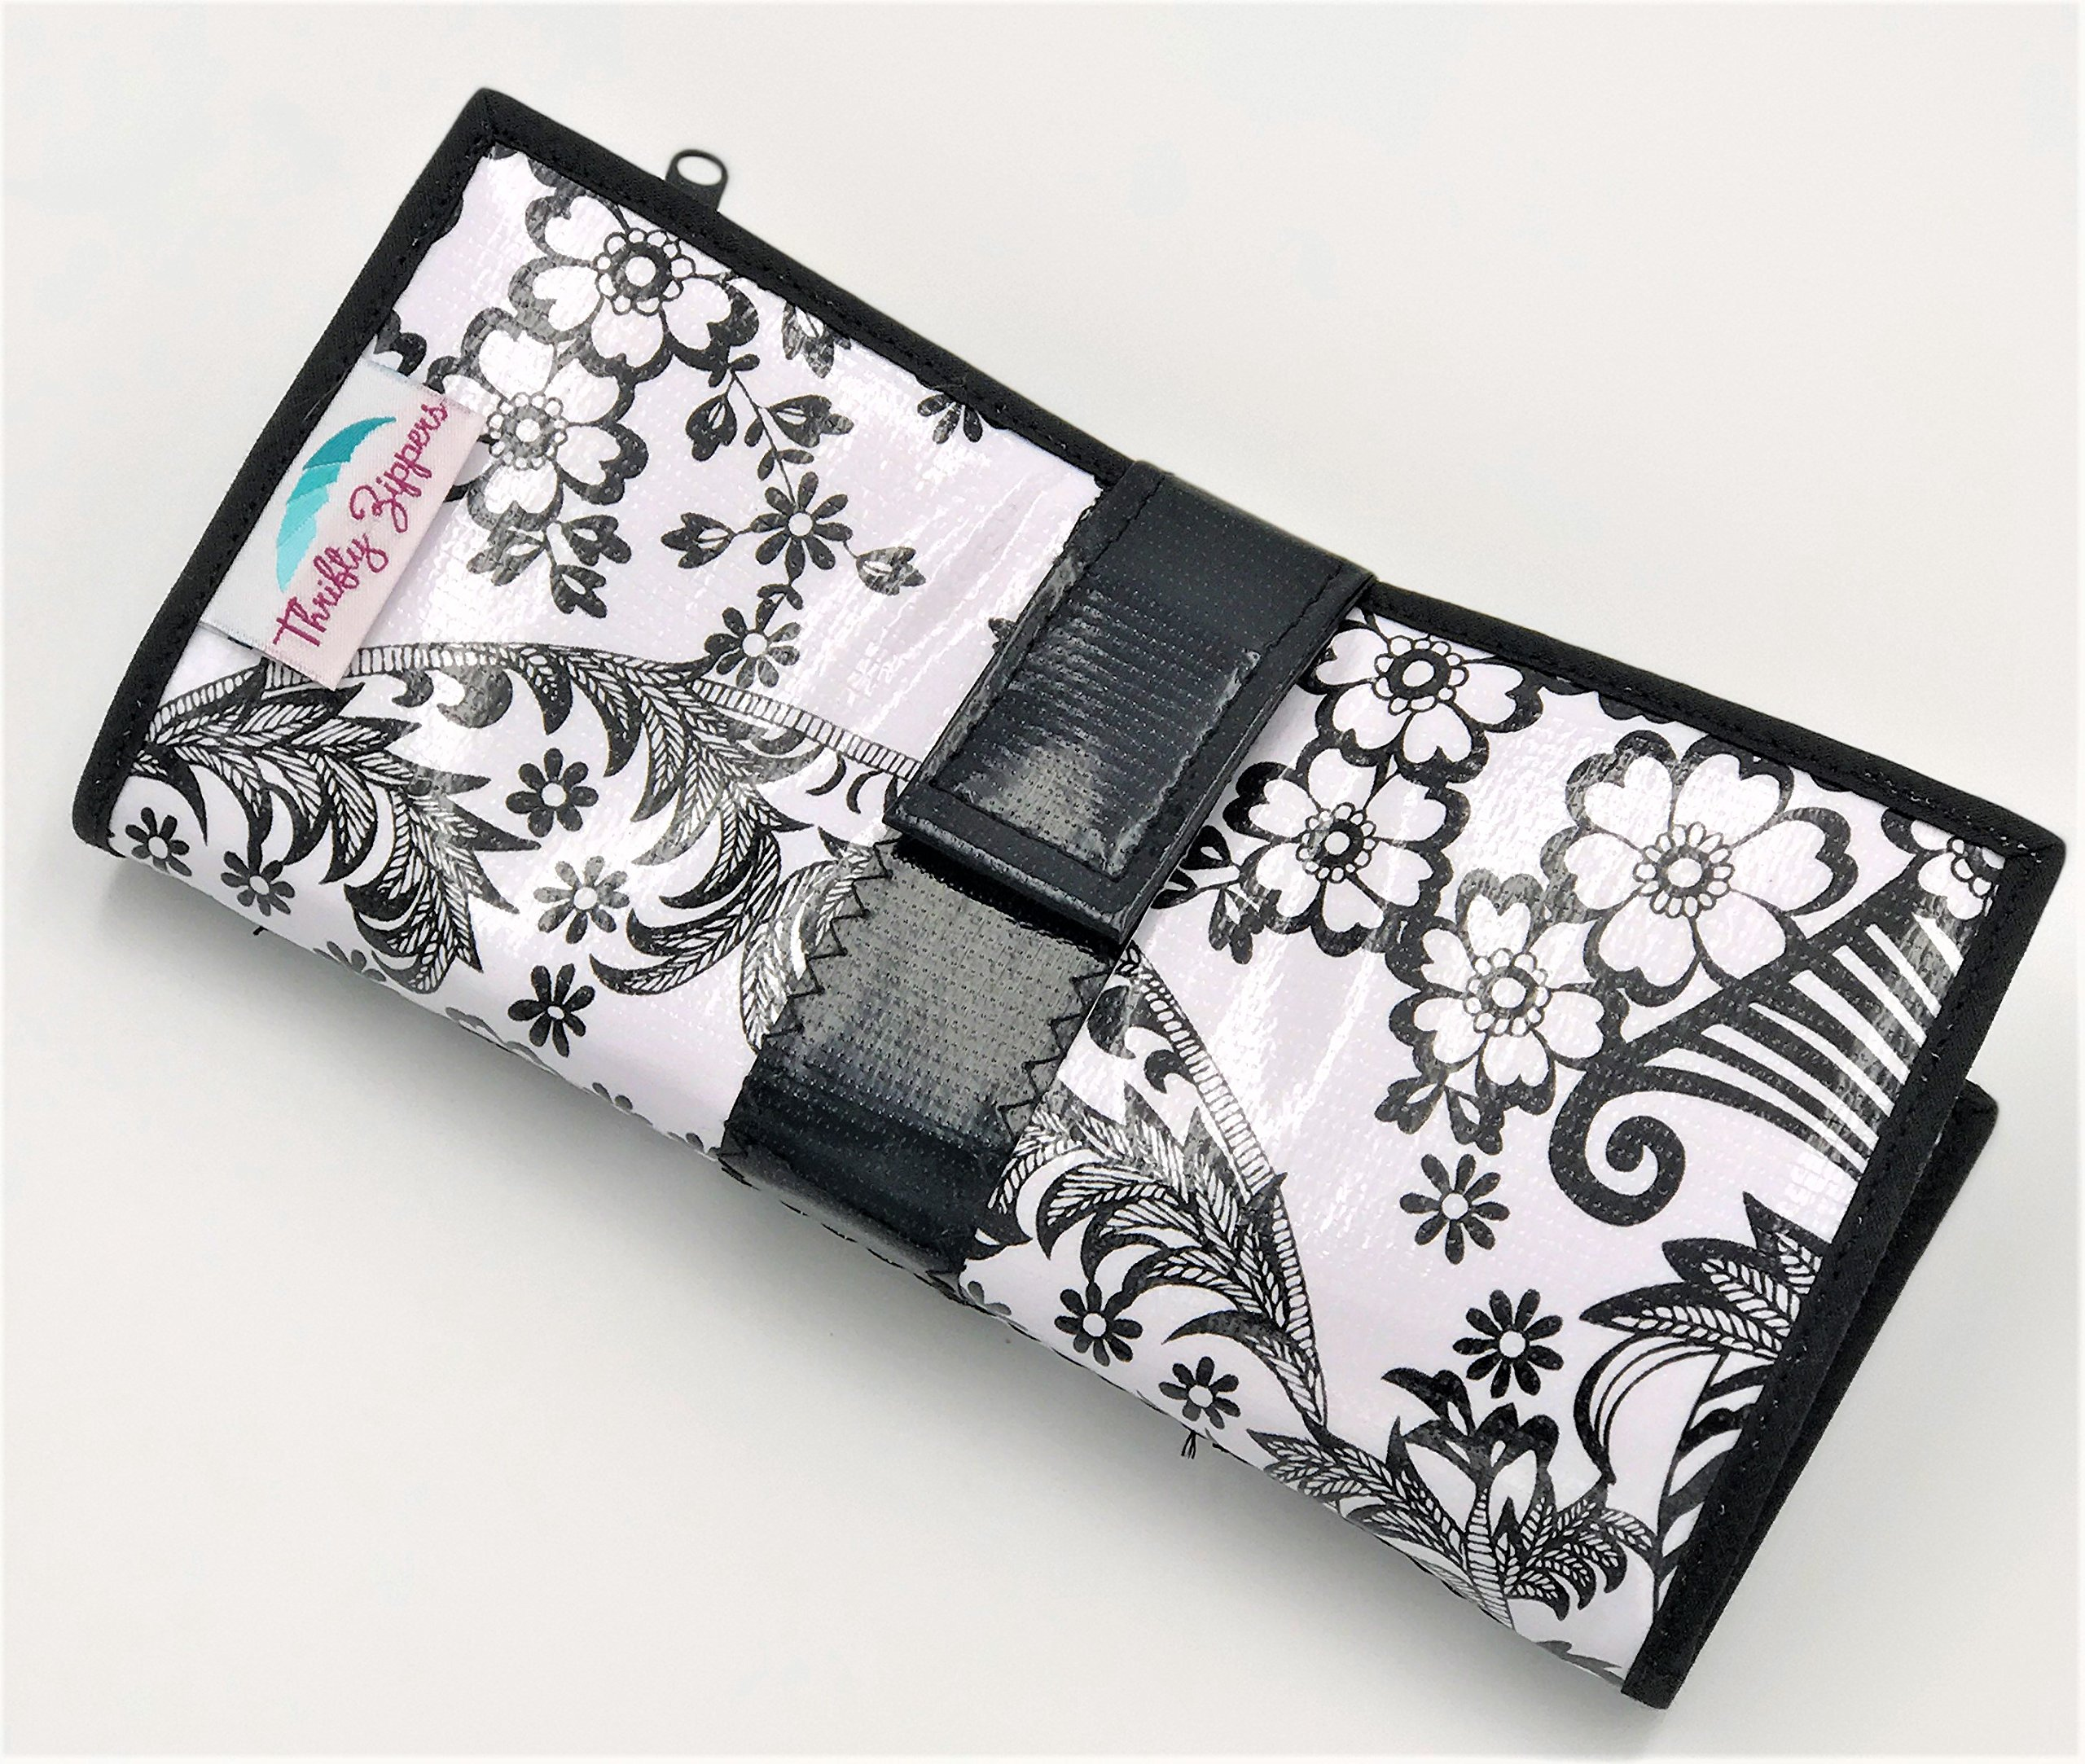 Cute Black and White Oilcloth Envelope System Wallet for Cash Budgeting and Extreme Couponing